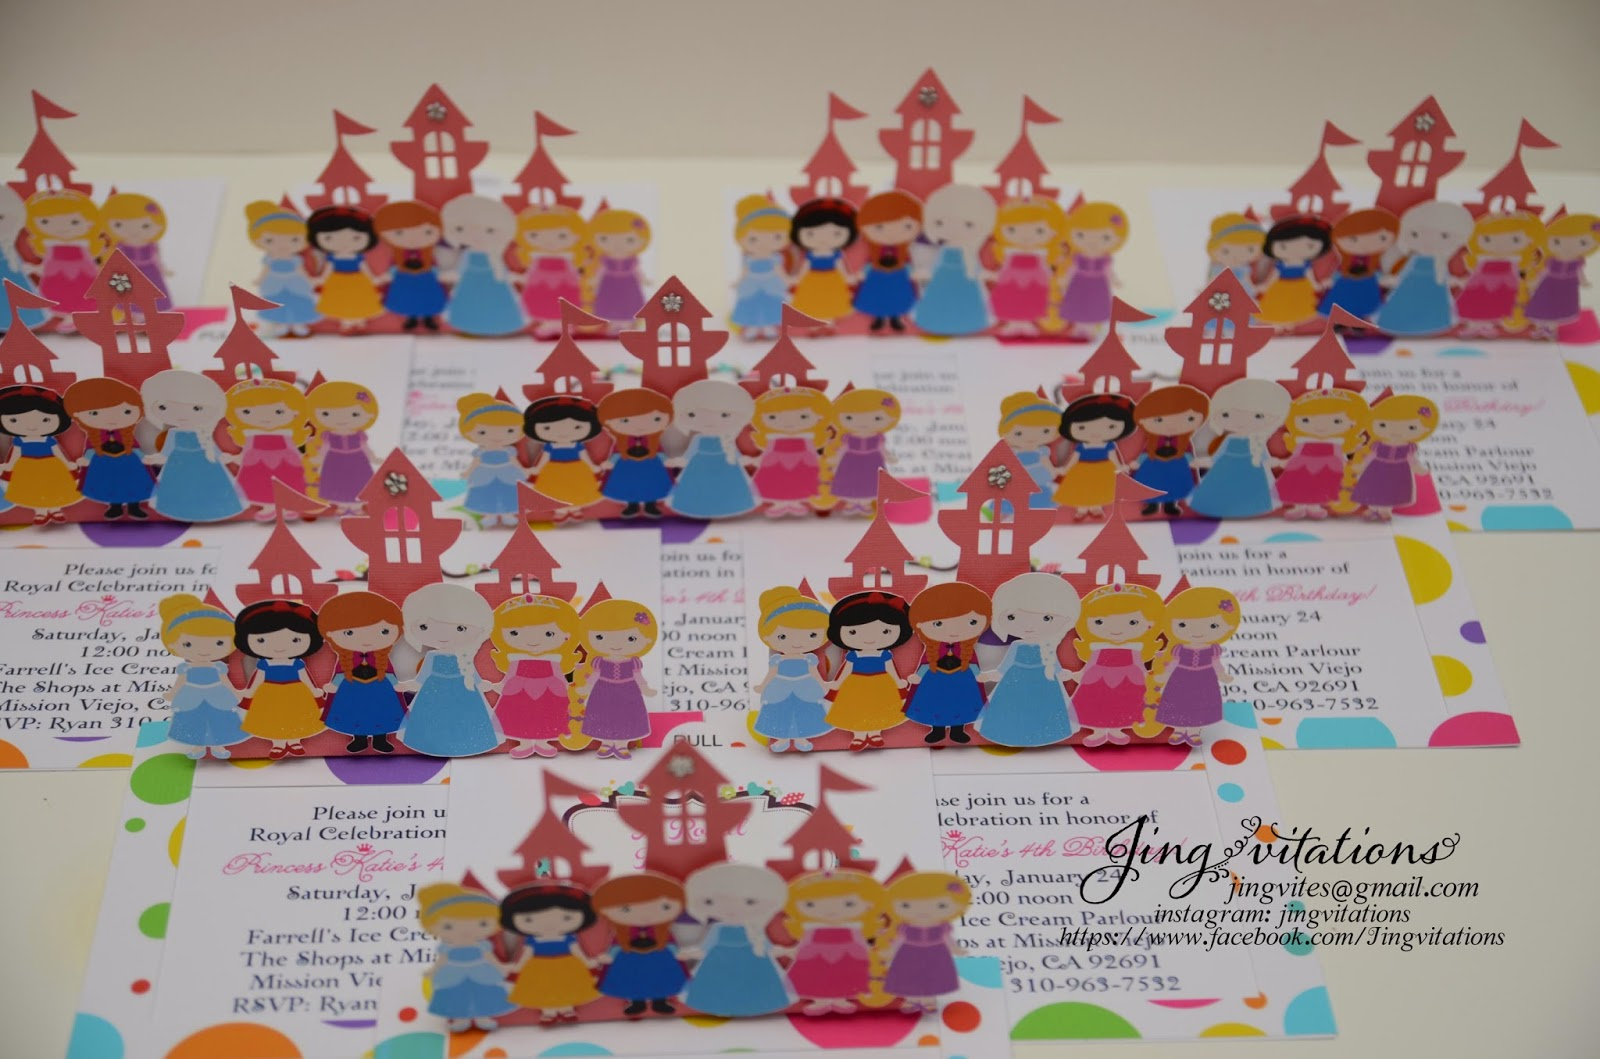 pop up invitations, handmade invitations